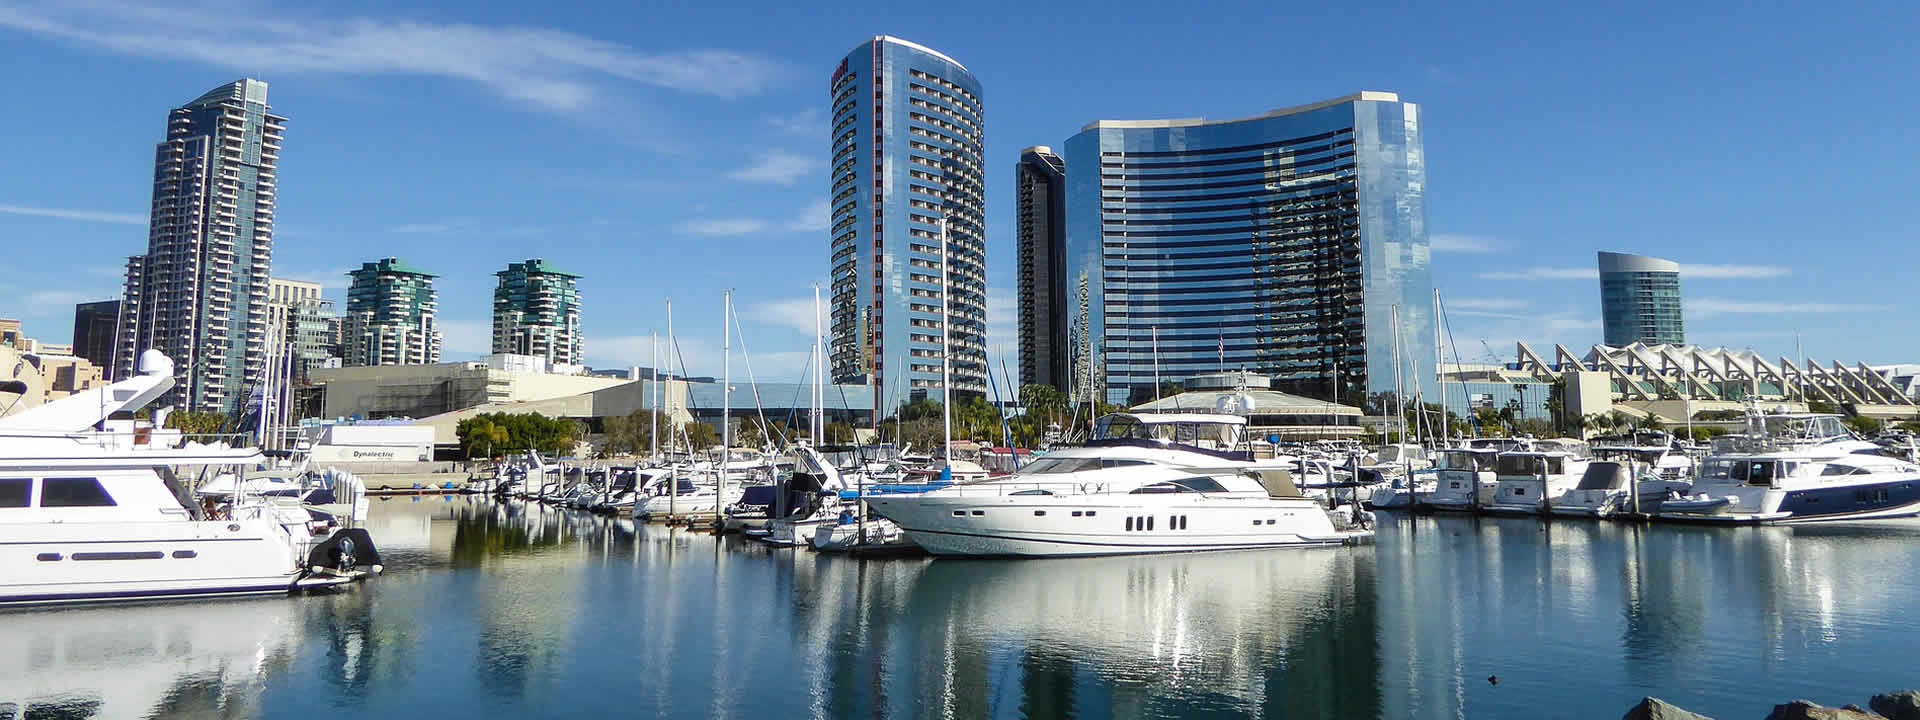 San Diego Private Jet Charter Rental